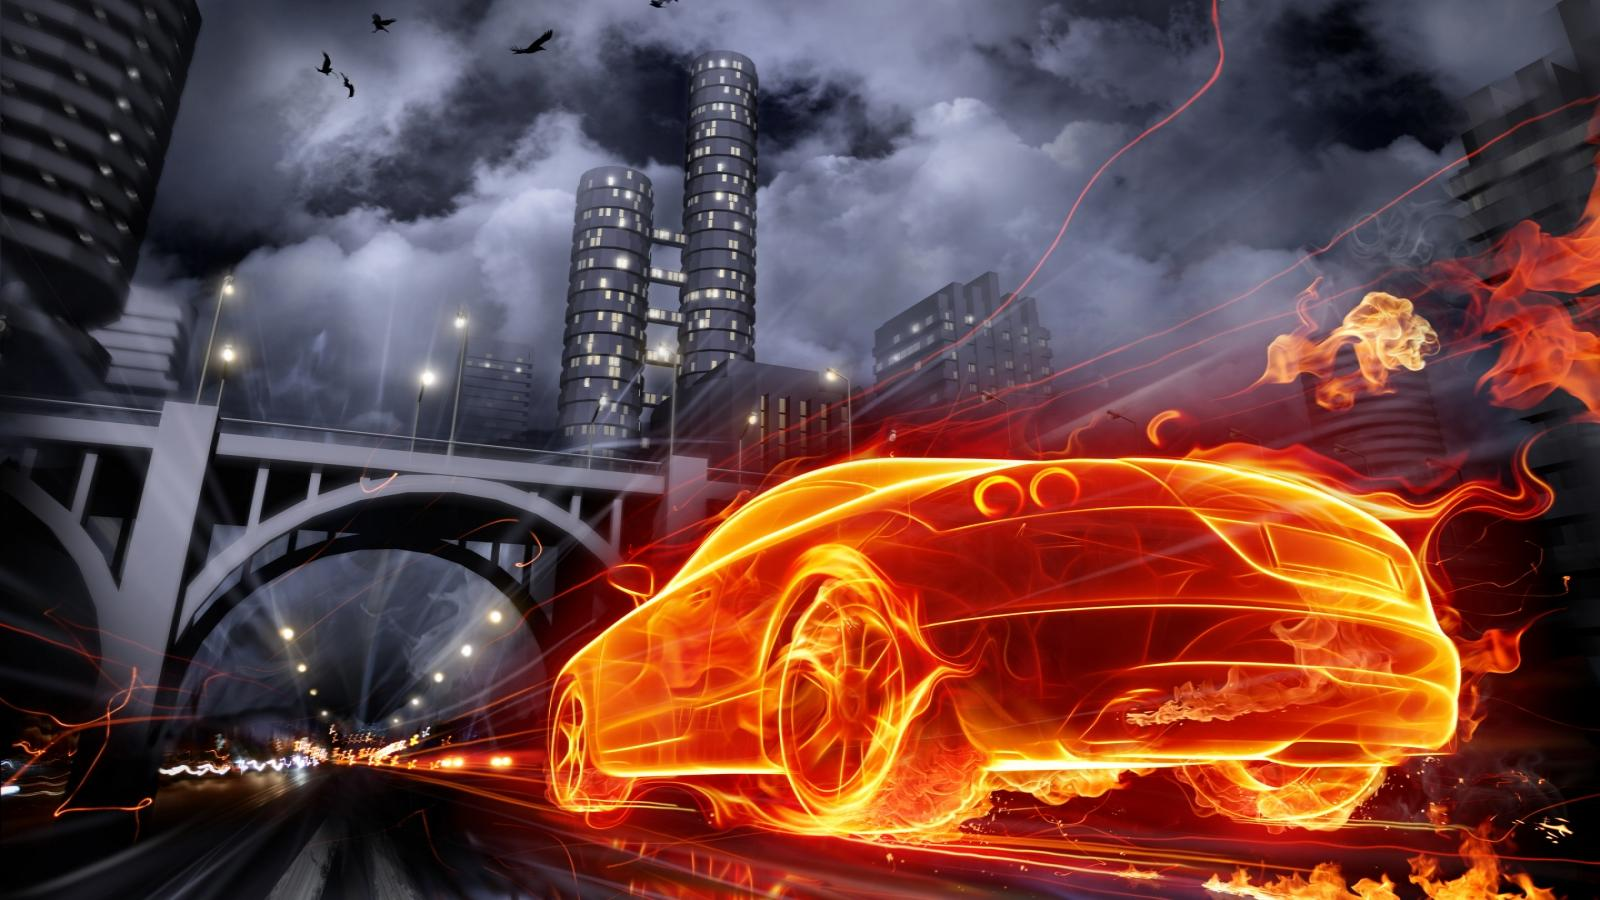 Cool Fire Wallpapers - Wallpaper Cave